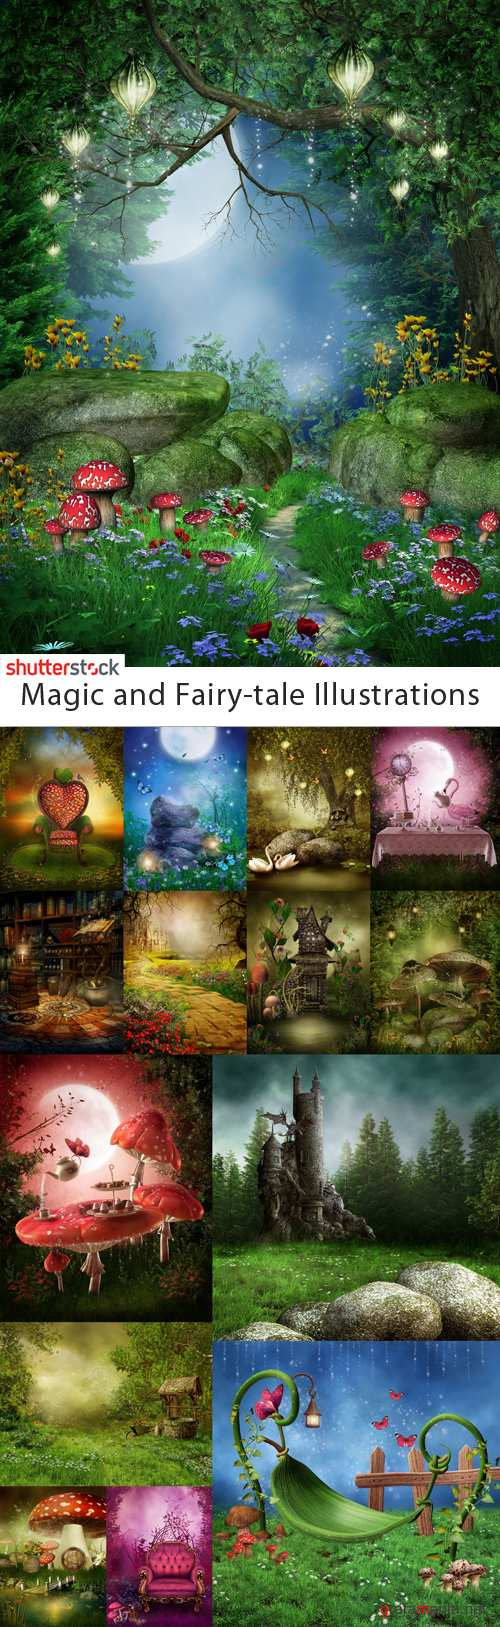 Magic and Fairy-tale Illustrations - 25 HQ Stock Images